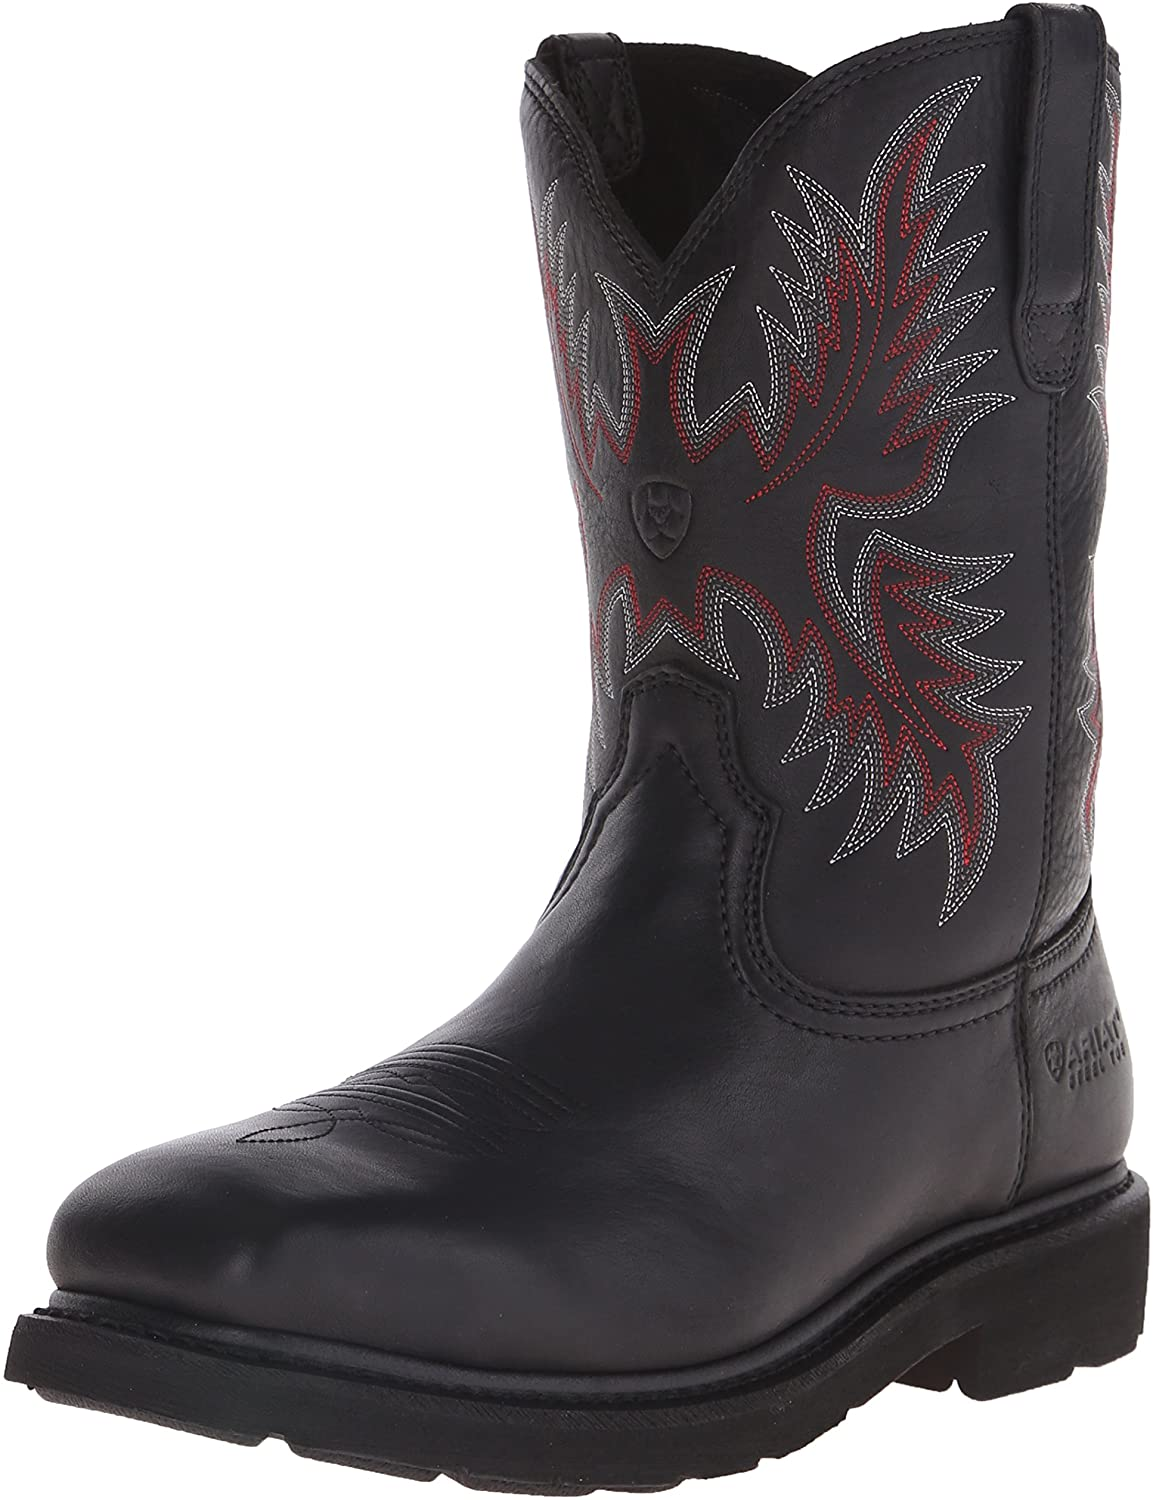 Ariat Sierra Max 71% OFF Wide Square Toe Steel Fashionable Safety Men's - Boots Work